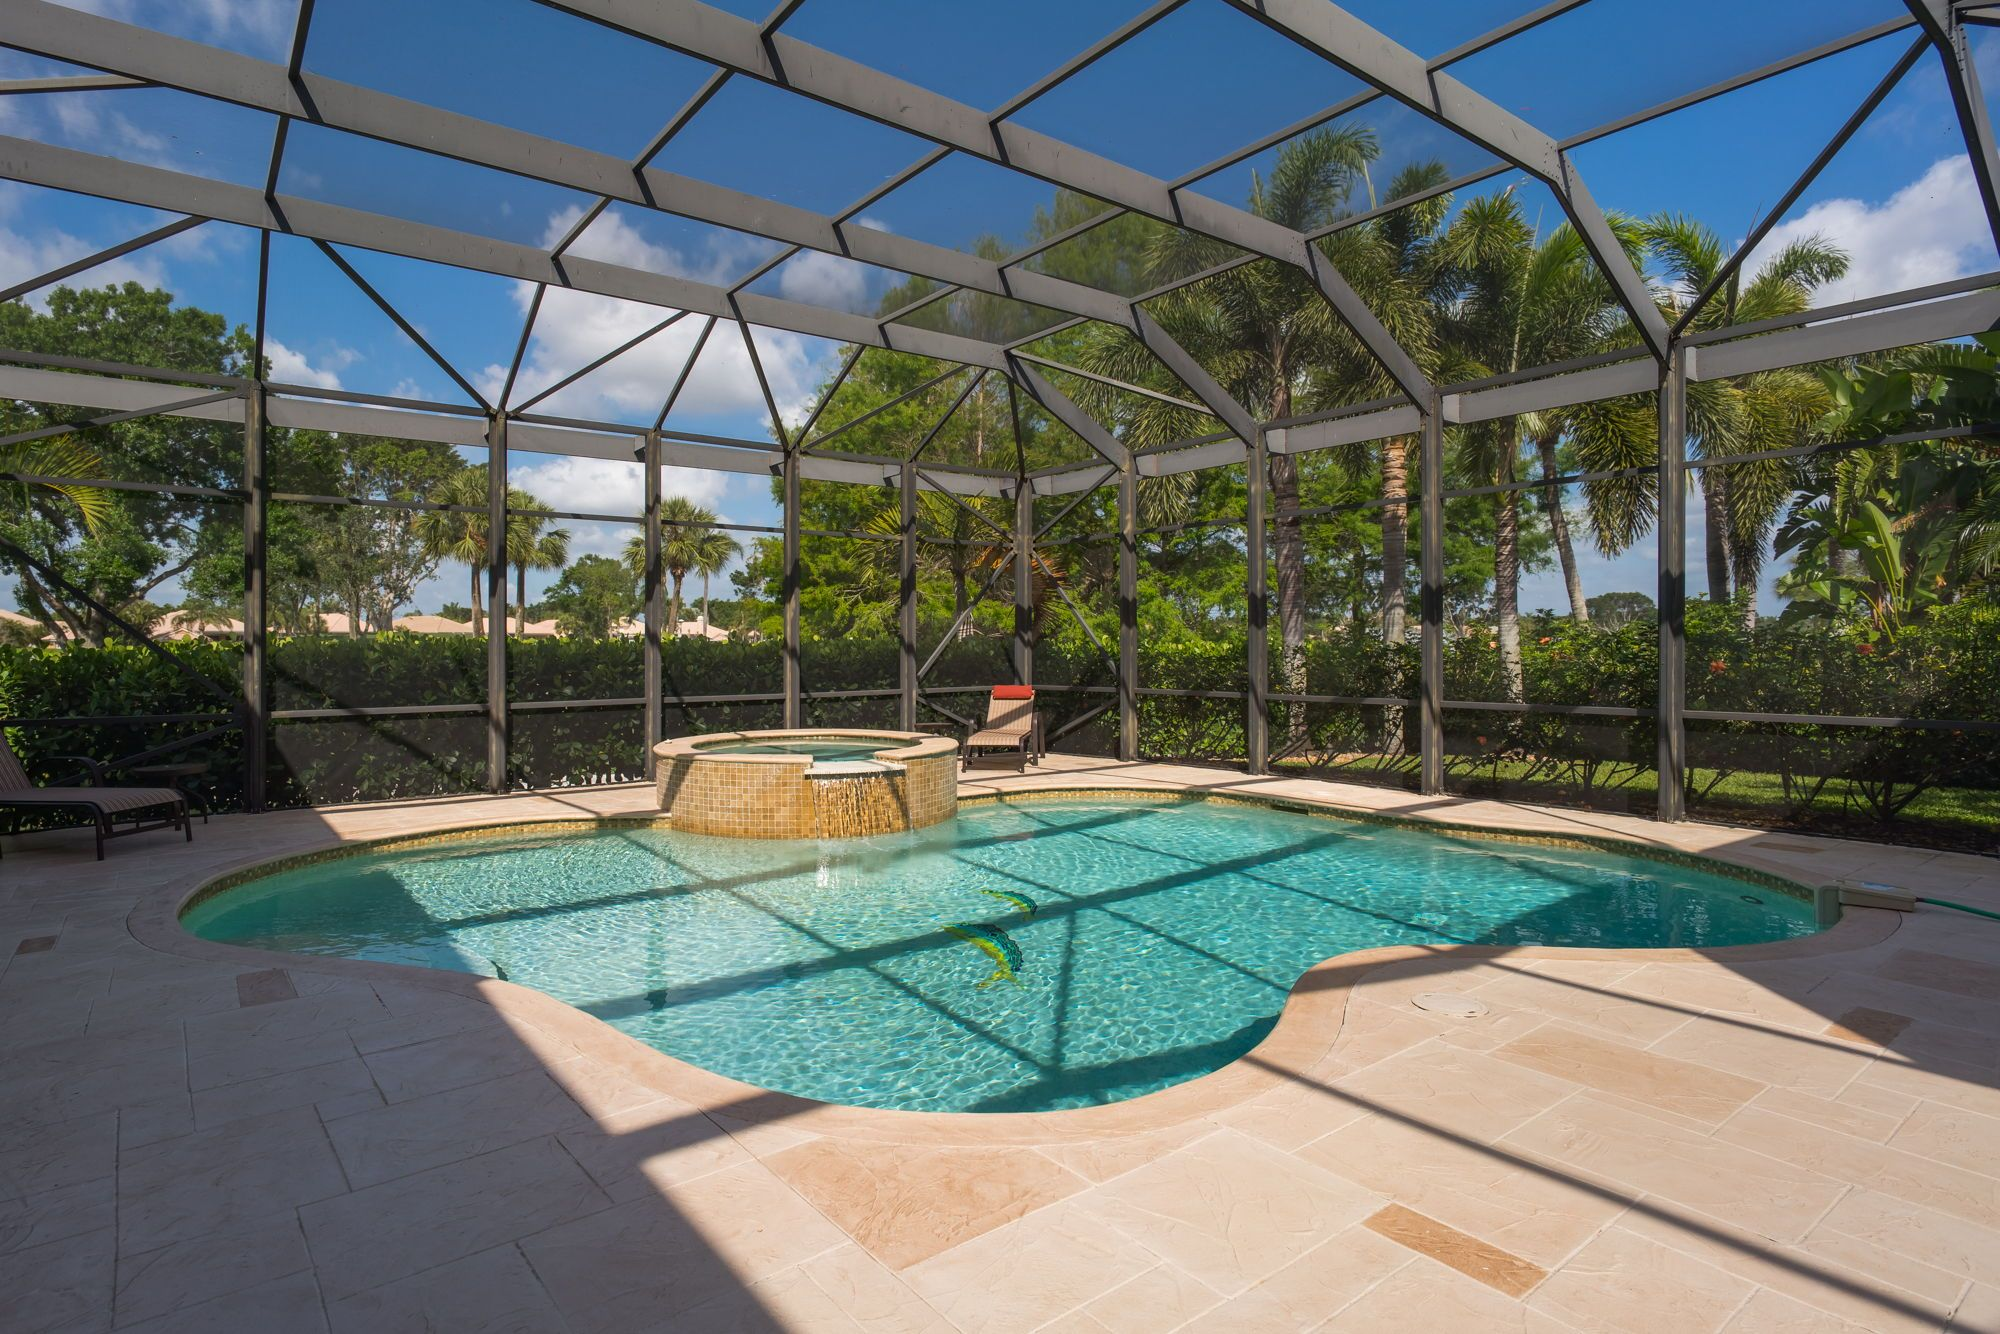 The Patio Was Recently Covered With An Architectural Overlay Concrete Design And Boasts A Custom Freeform Screene Patio Outdoor Kitchen Design Outdoor Kitchen